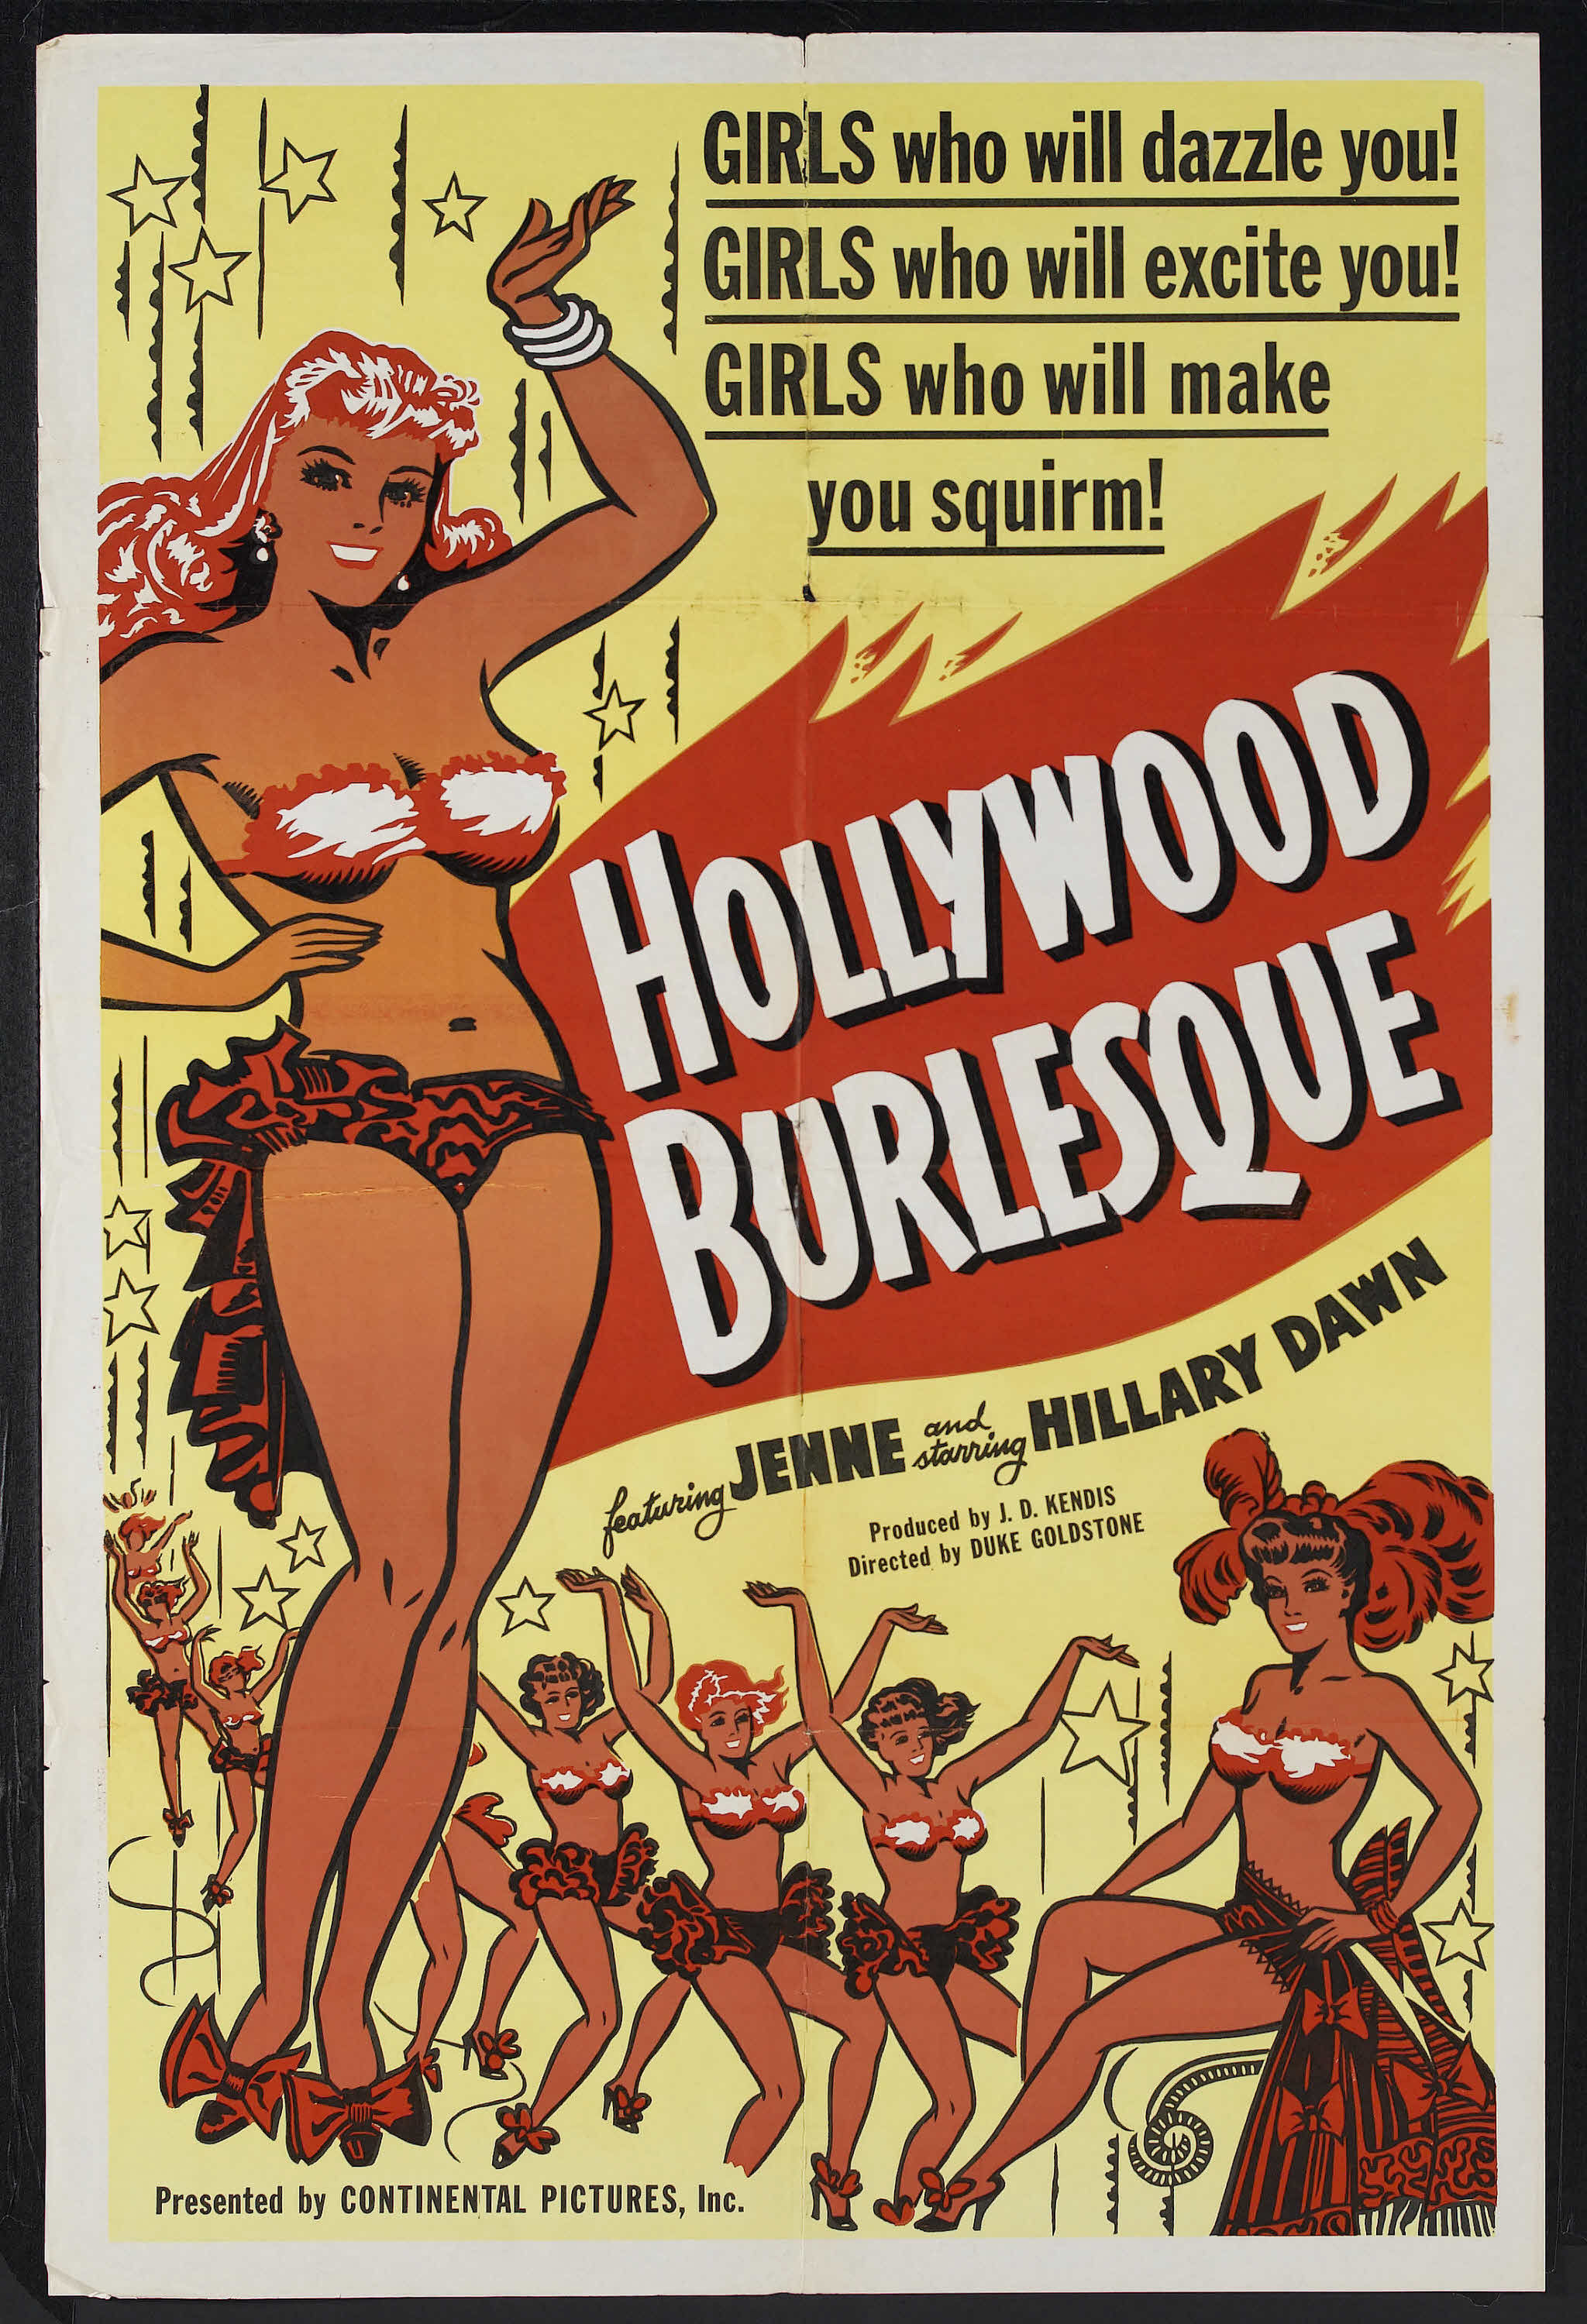 Hollywood burlesque poster someone HD Wallpaper